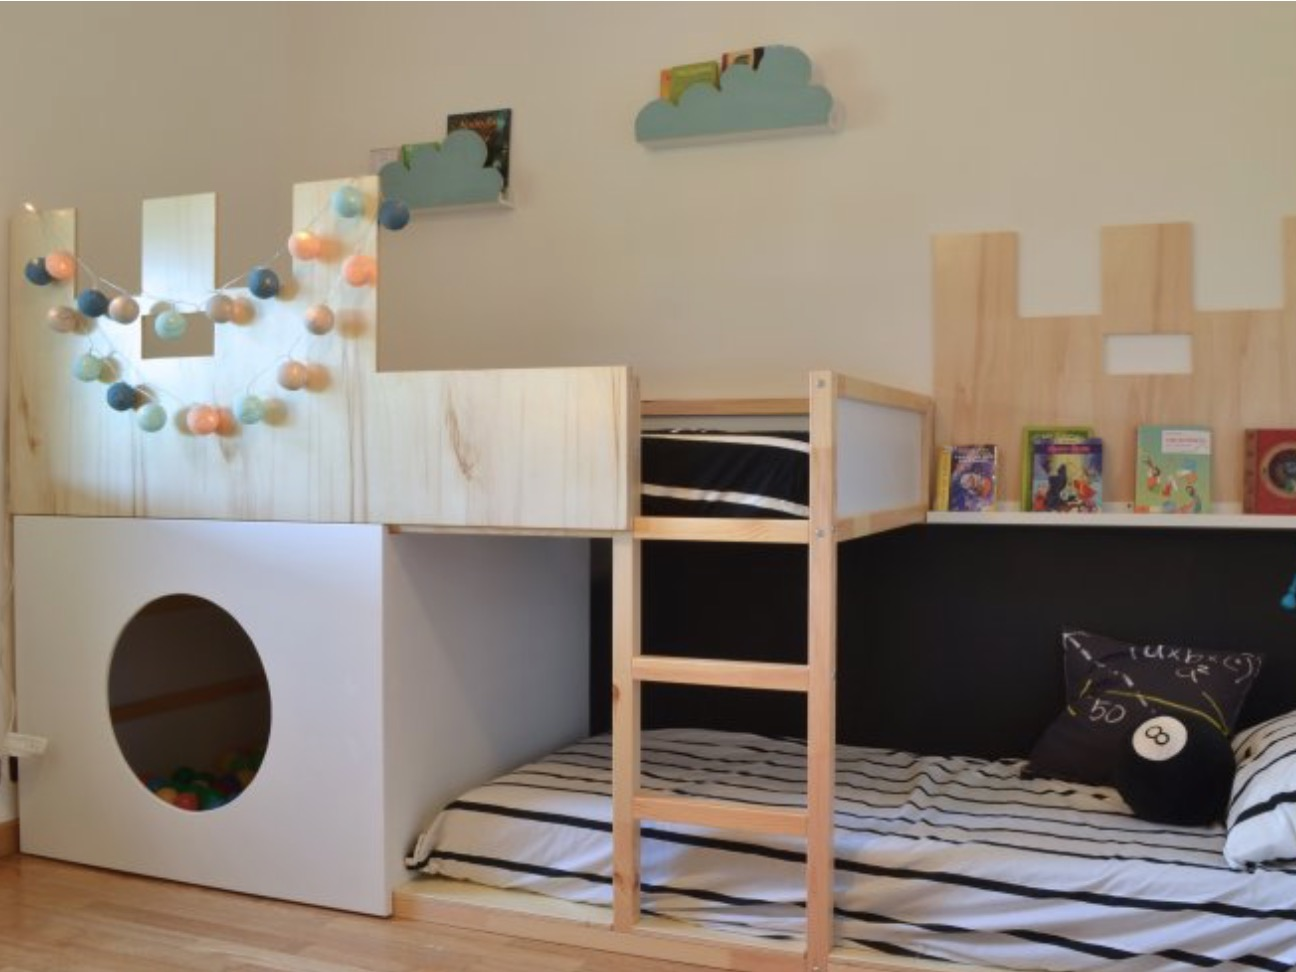 Snooze Bunk Beds 18 Awesome Ikea Bunk Bed Hacks Your Kids Will Love